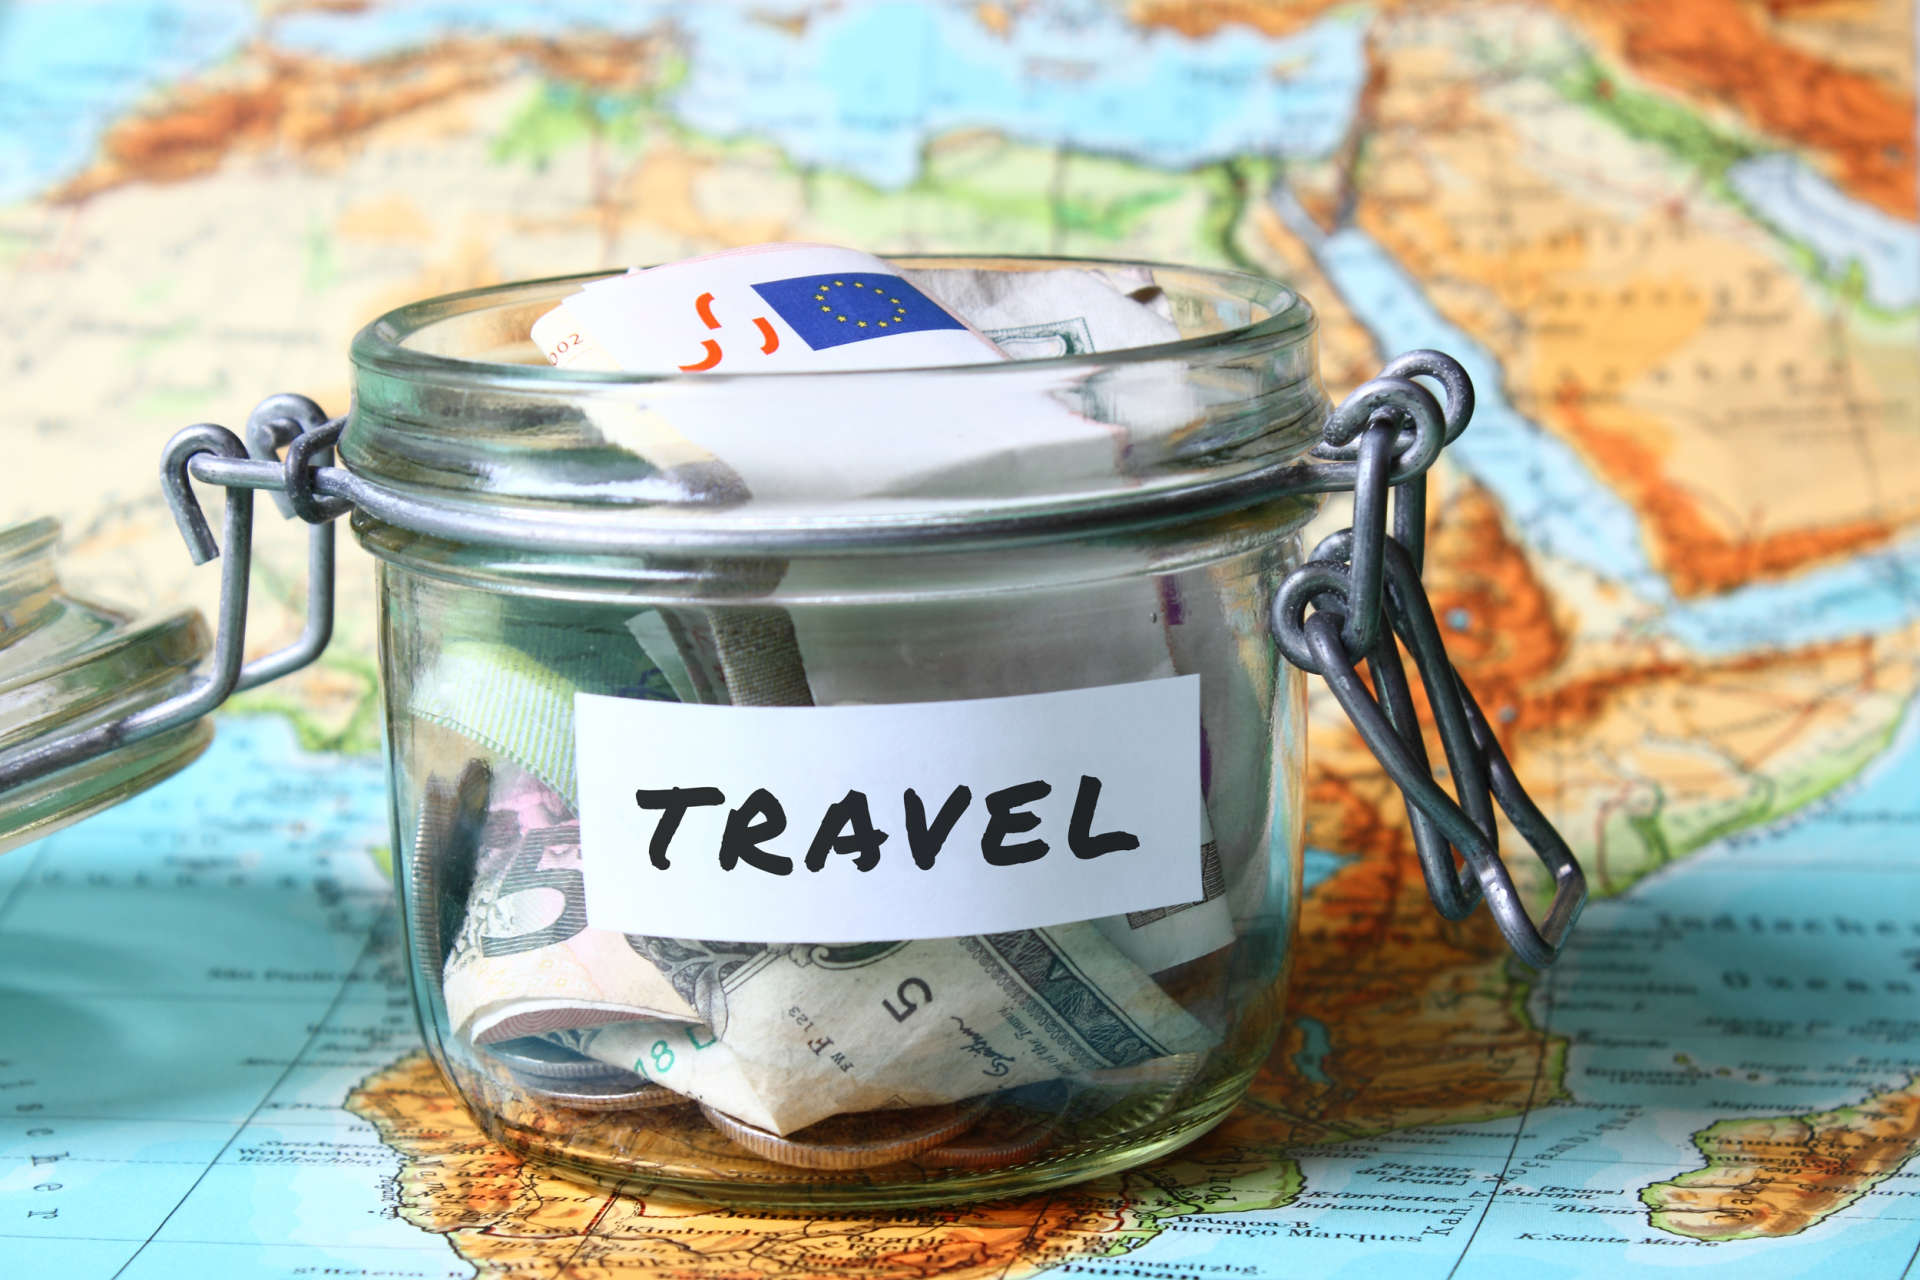 Budget travel 101 the world for cheap affordable comfort for Travel the world for cheap